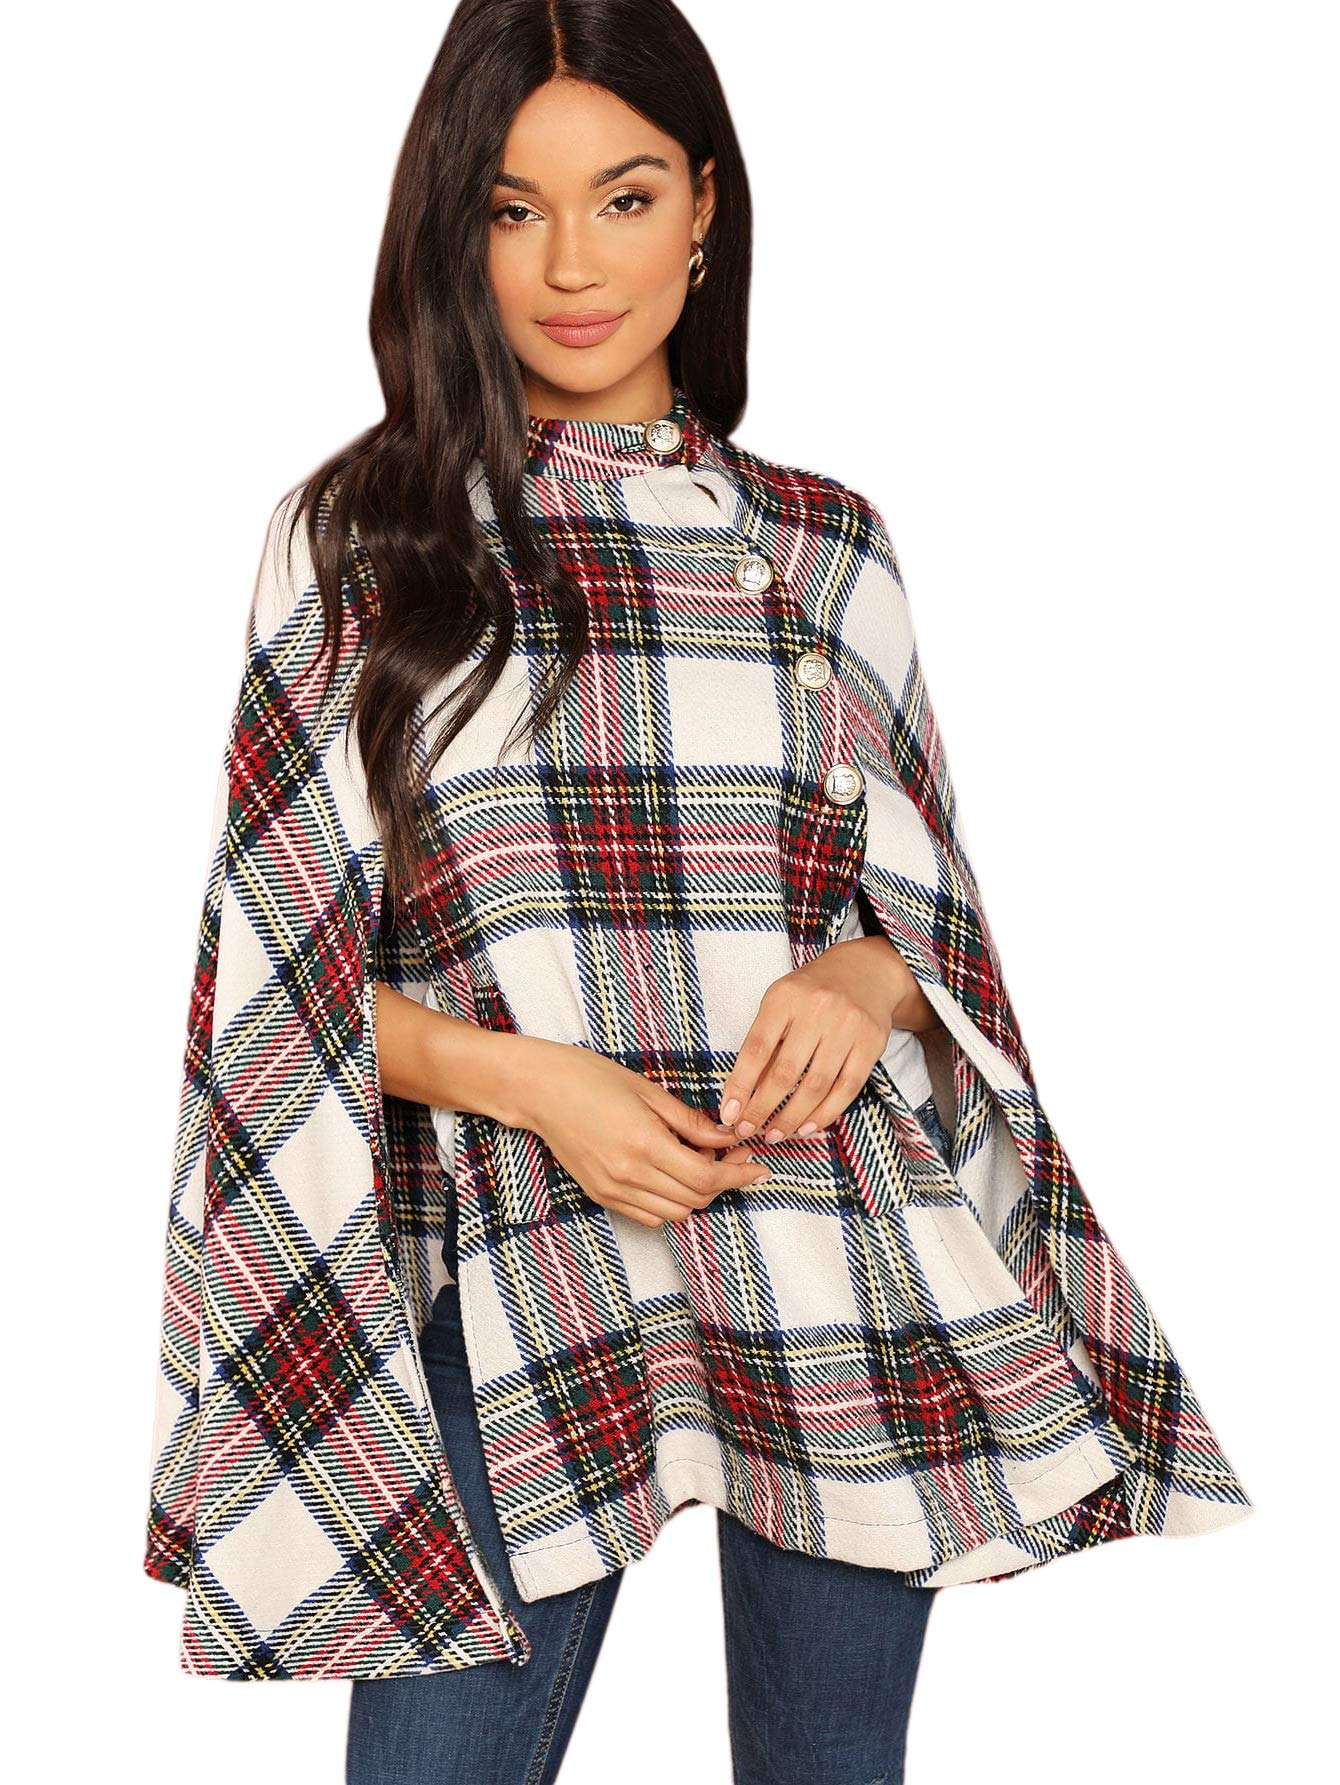 MAKEMECHIC Women's Button Front Cloak Sleeve Elegant Cape Mock Poncho Classy Plaid Print Cape Coat Multicolor-1 M by MAKEMECHIC